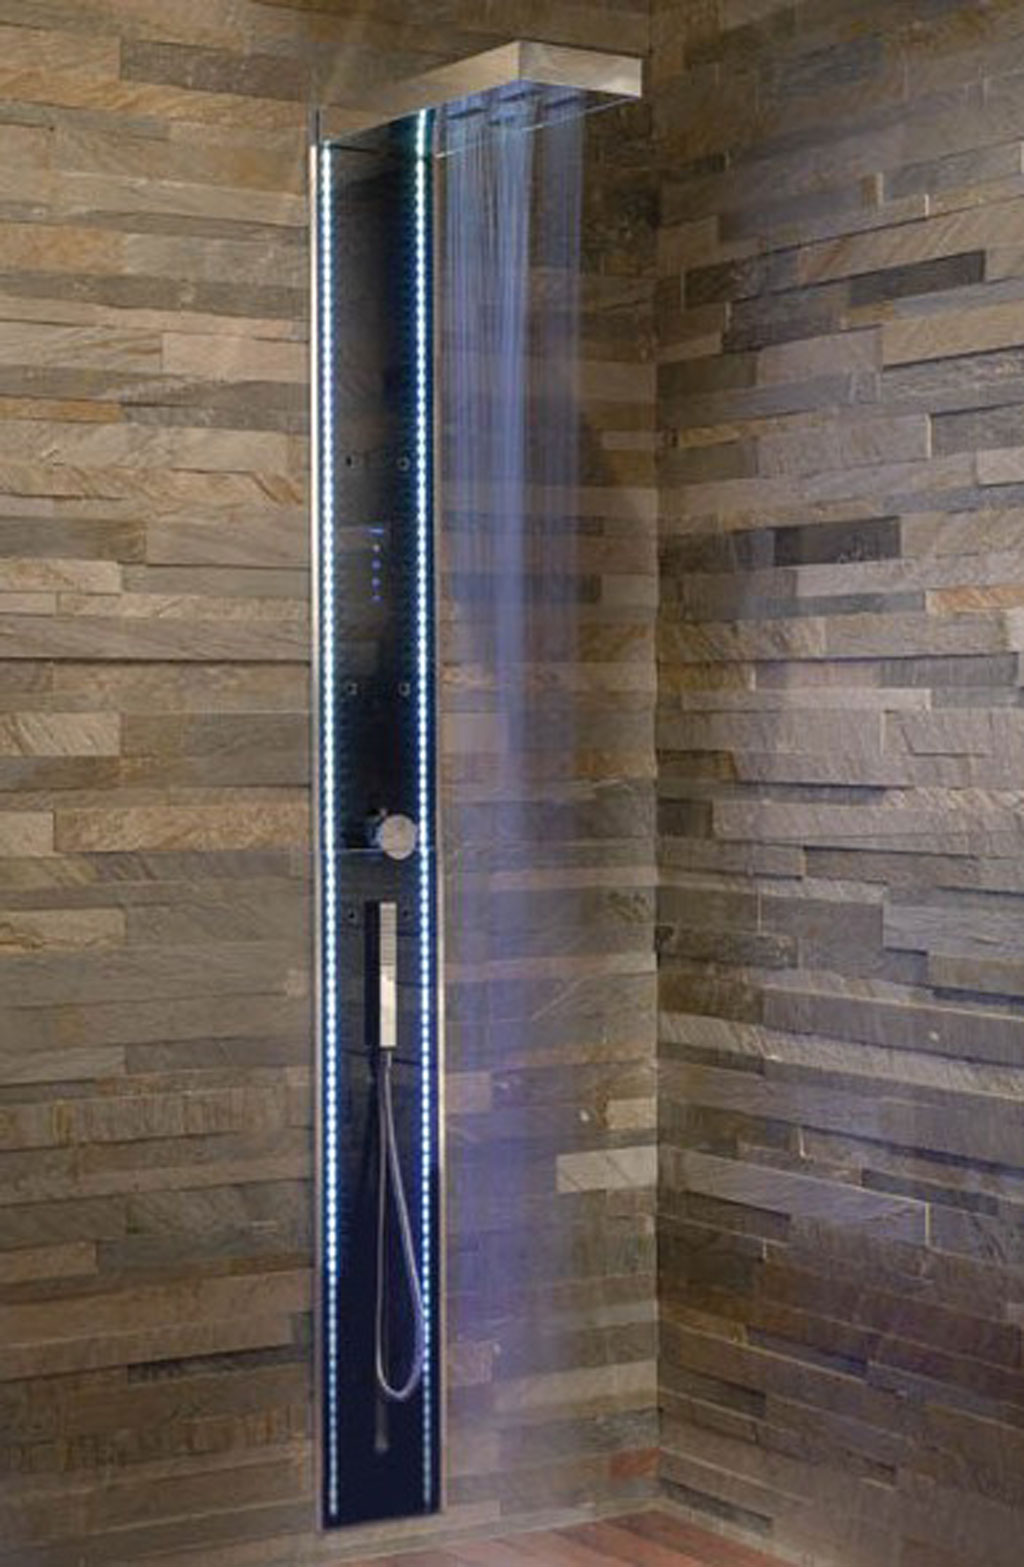 32 good ideas and pictures of modern bathroom tiles texture for Bathroom tile ideas